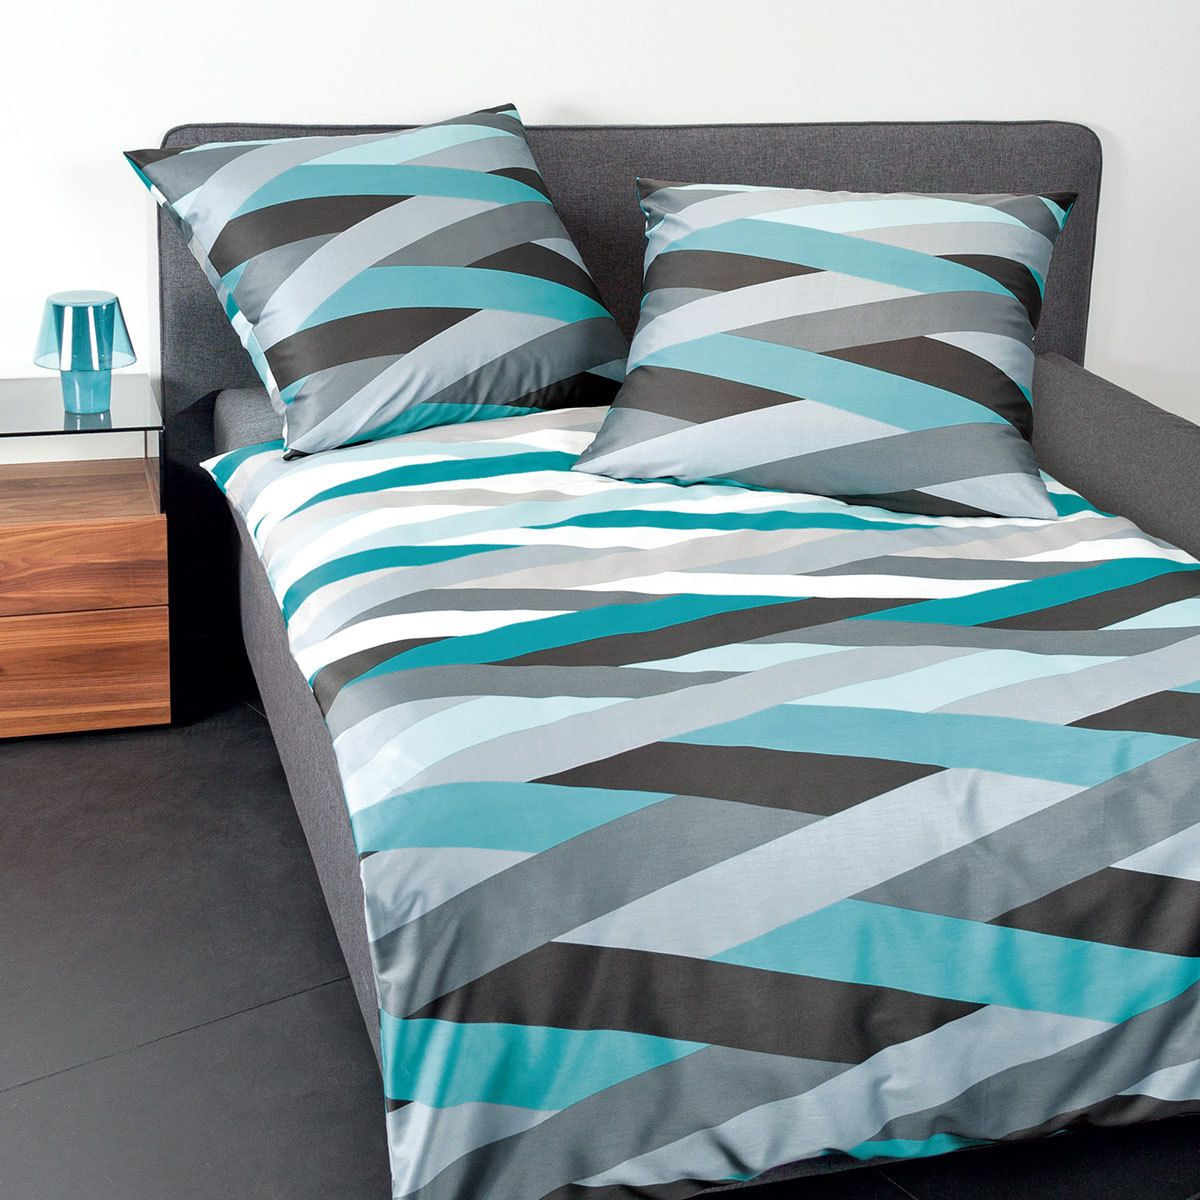 Janine Bettwäsche Kariert Janine Mako Satin Bettwäsche Moments 98020 08 Modern Bedding